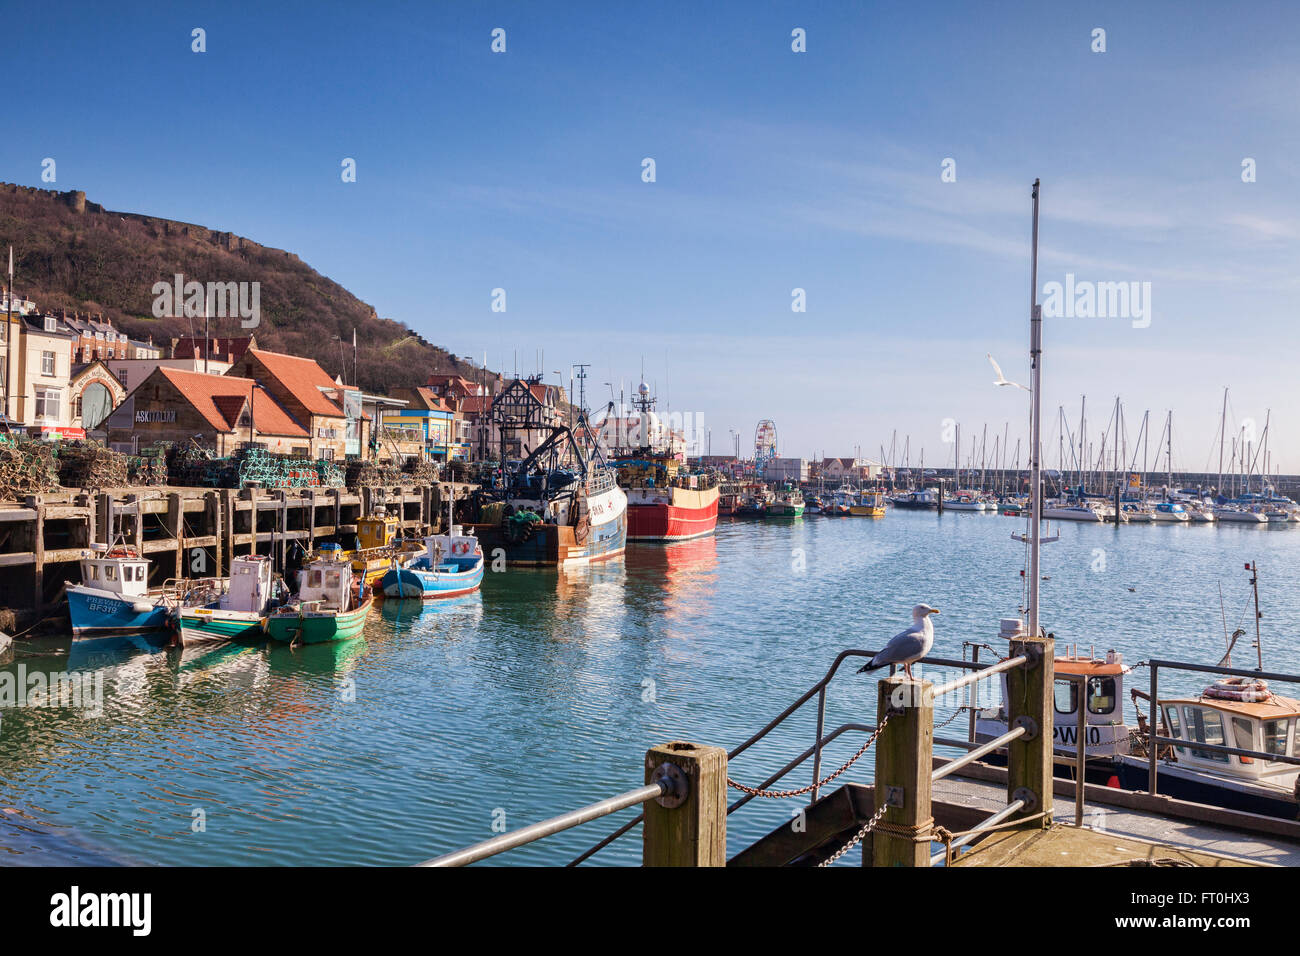 Scarborough Harbour, North Yorkshire, England, UK - Stock Image